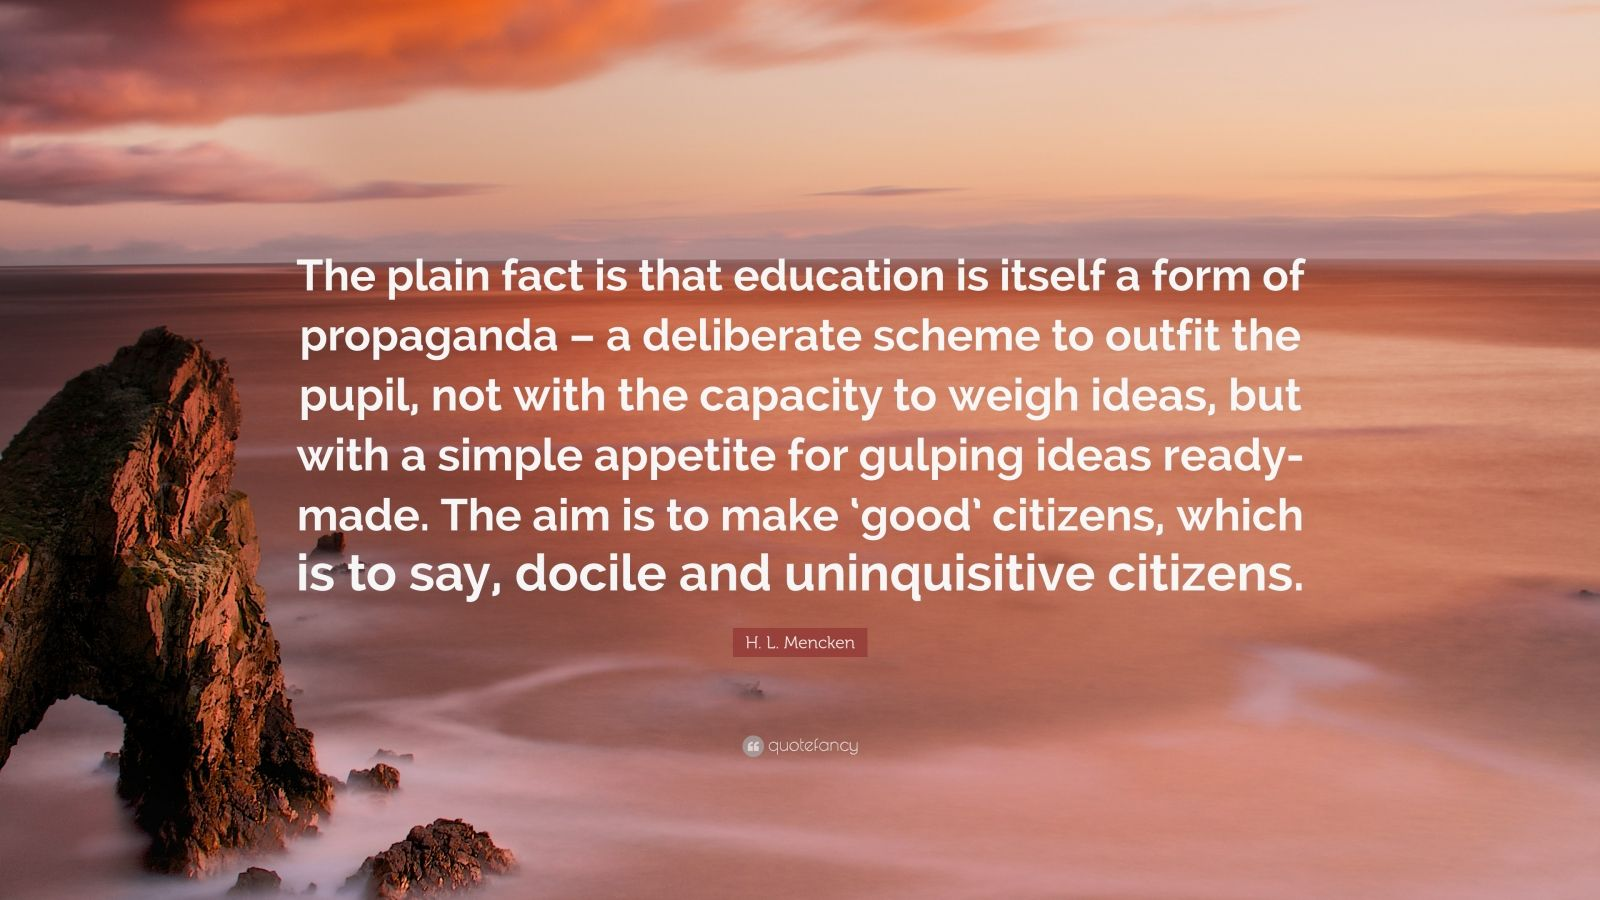 "H. L. Mencken Quote: ""The plain fact is that education is itself a form of propaganda – a deliberate scheme to outfit the pupil, not with the capacity to weigh ideas, but with a simple appetite for gulping ideas ready-made. The aim is to make 'good' citizens, which is to say, docile and uninquisitive citizens."""